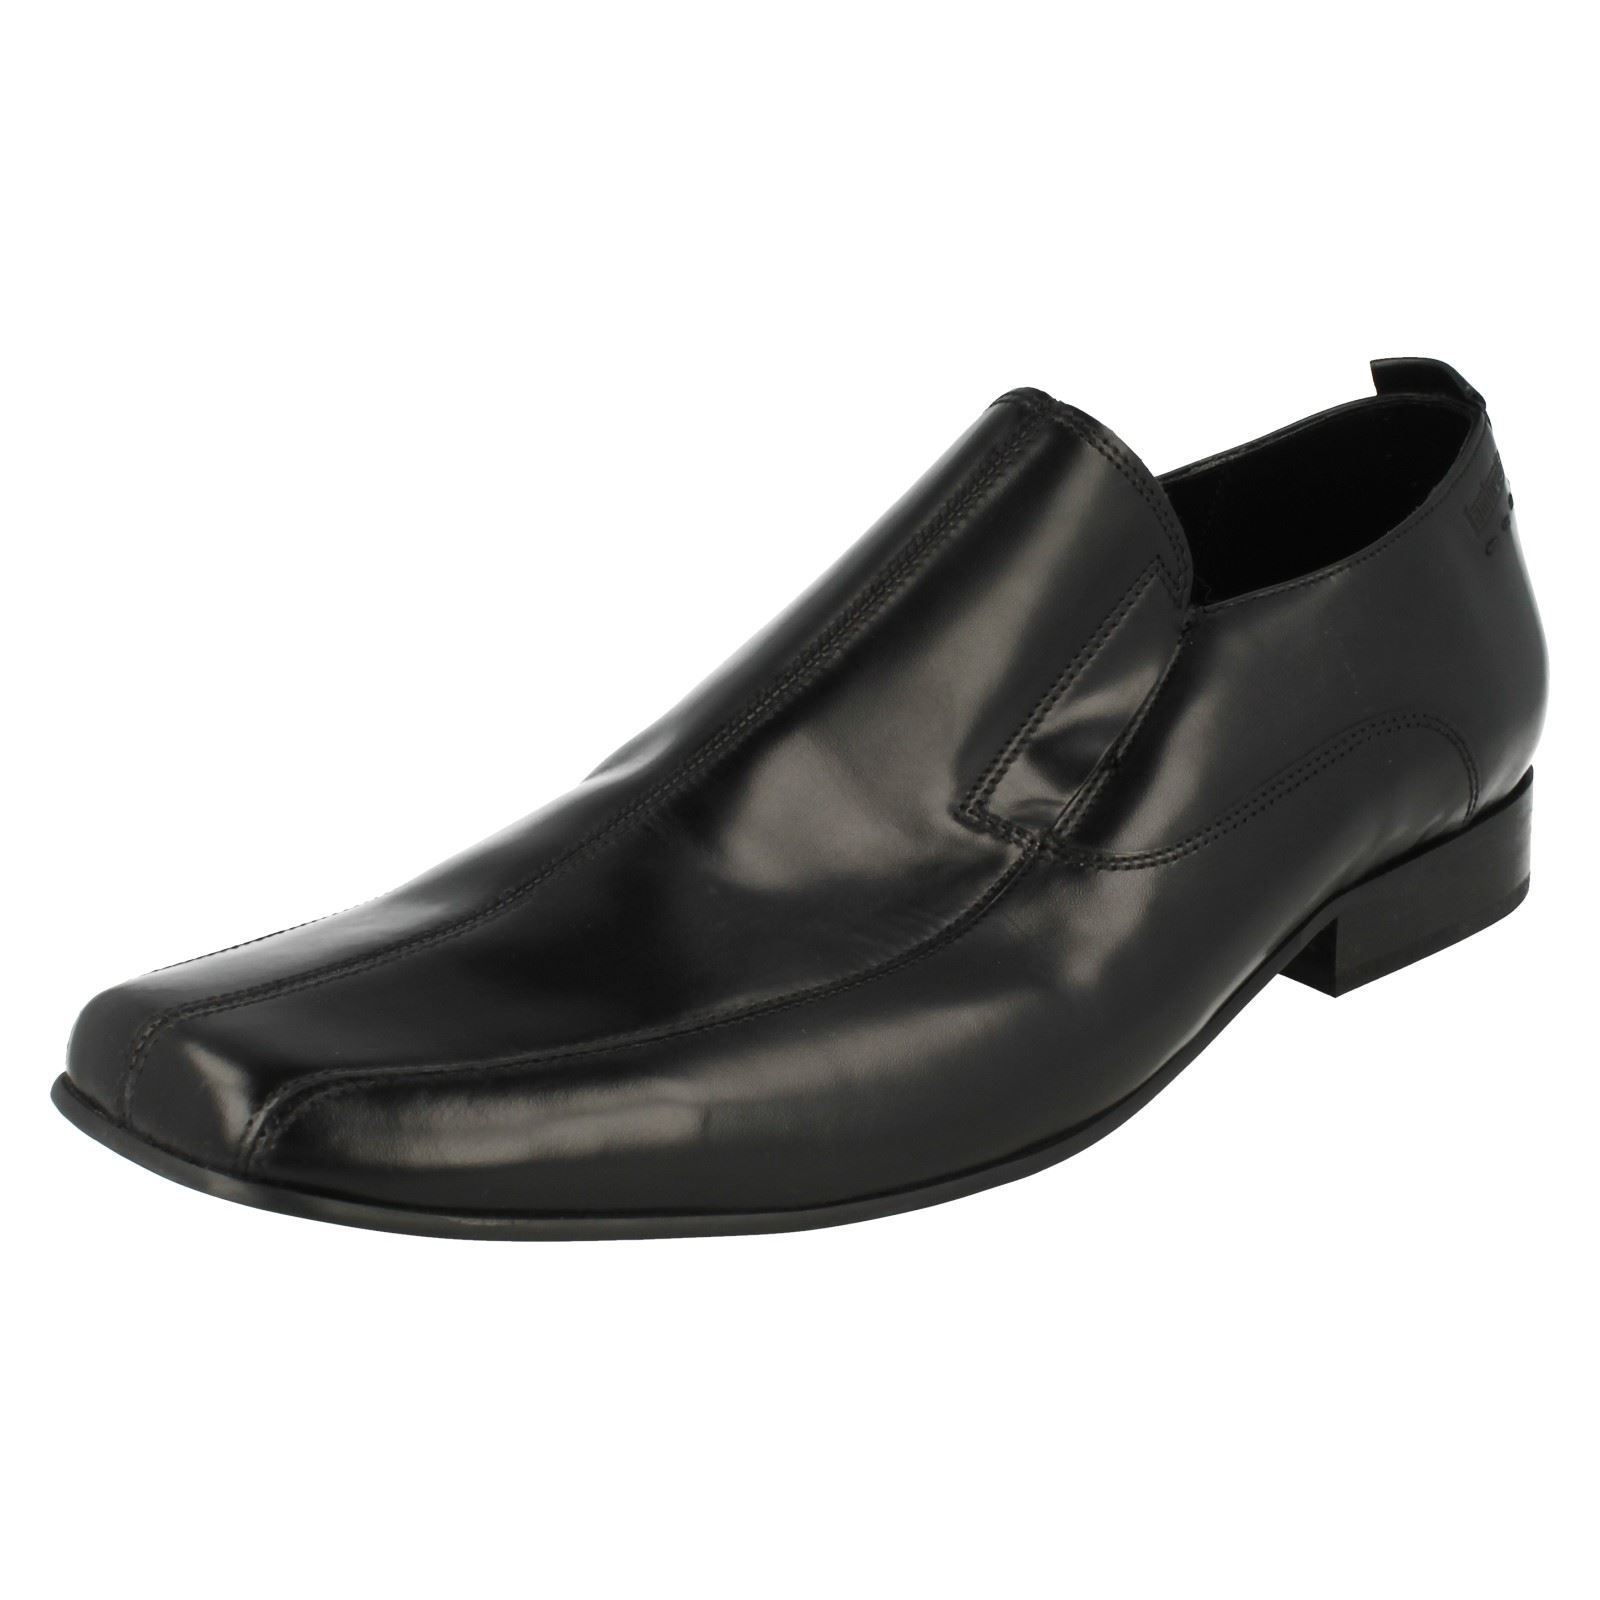 Lambretta Crowley Mens Black Slip on Shoe (R62A) Sizes 7 & 10 (R62A) Shoe (Kett) 2285fc